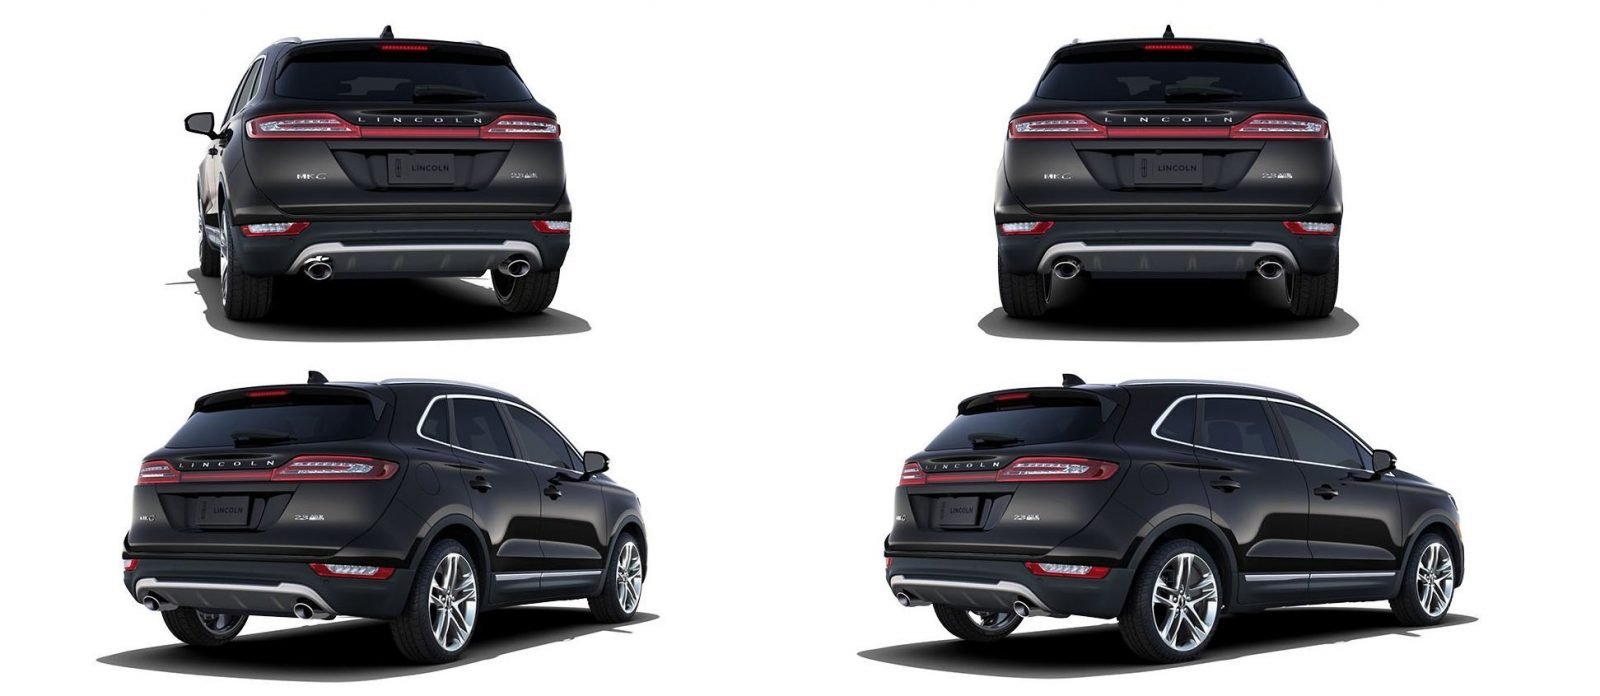 2015 Lincoln MKC Crossover - A Cool Mix of Infiniti and Audi106